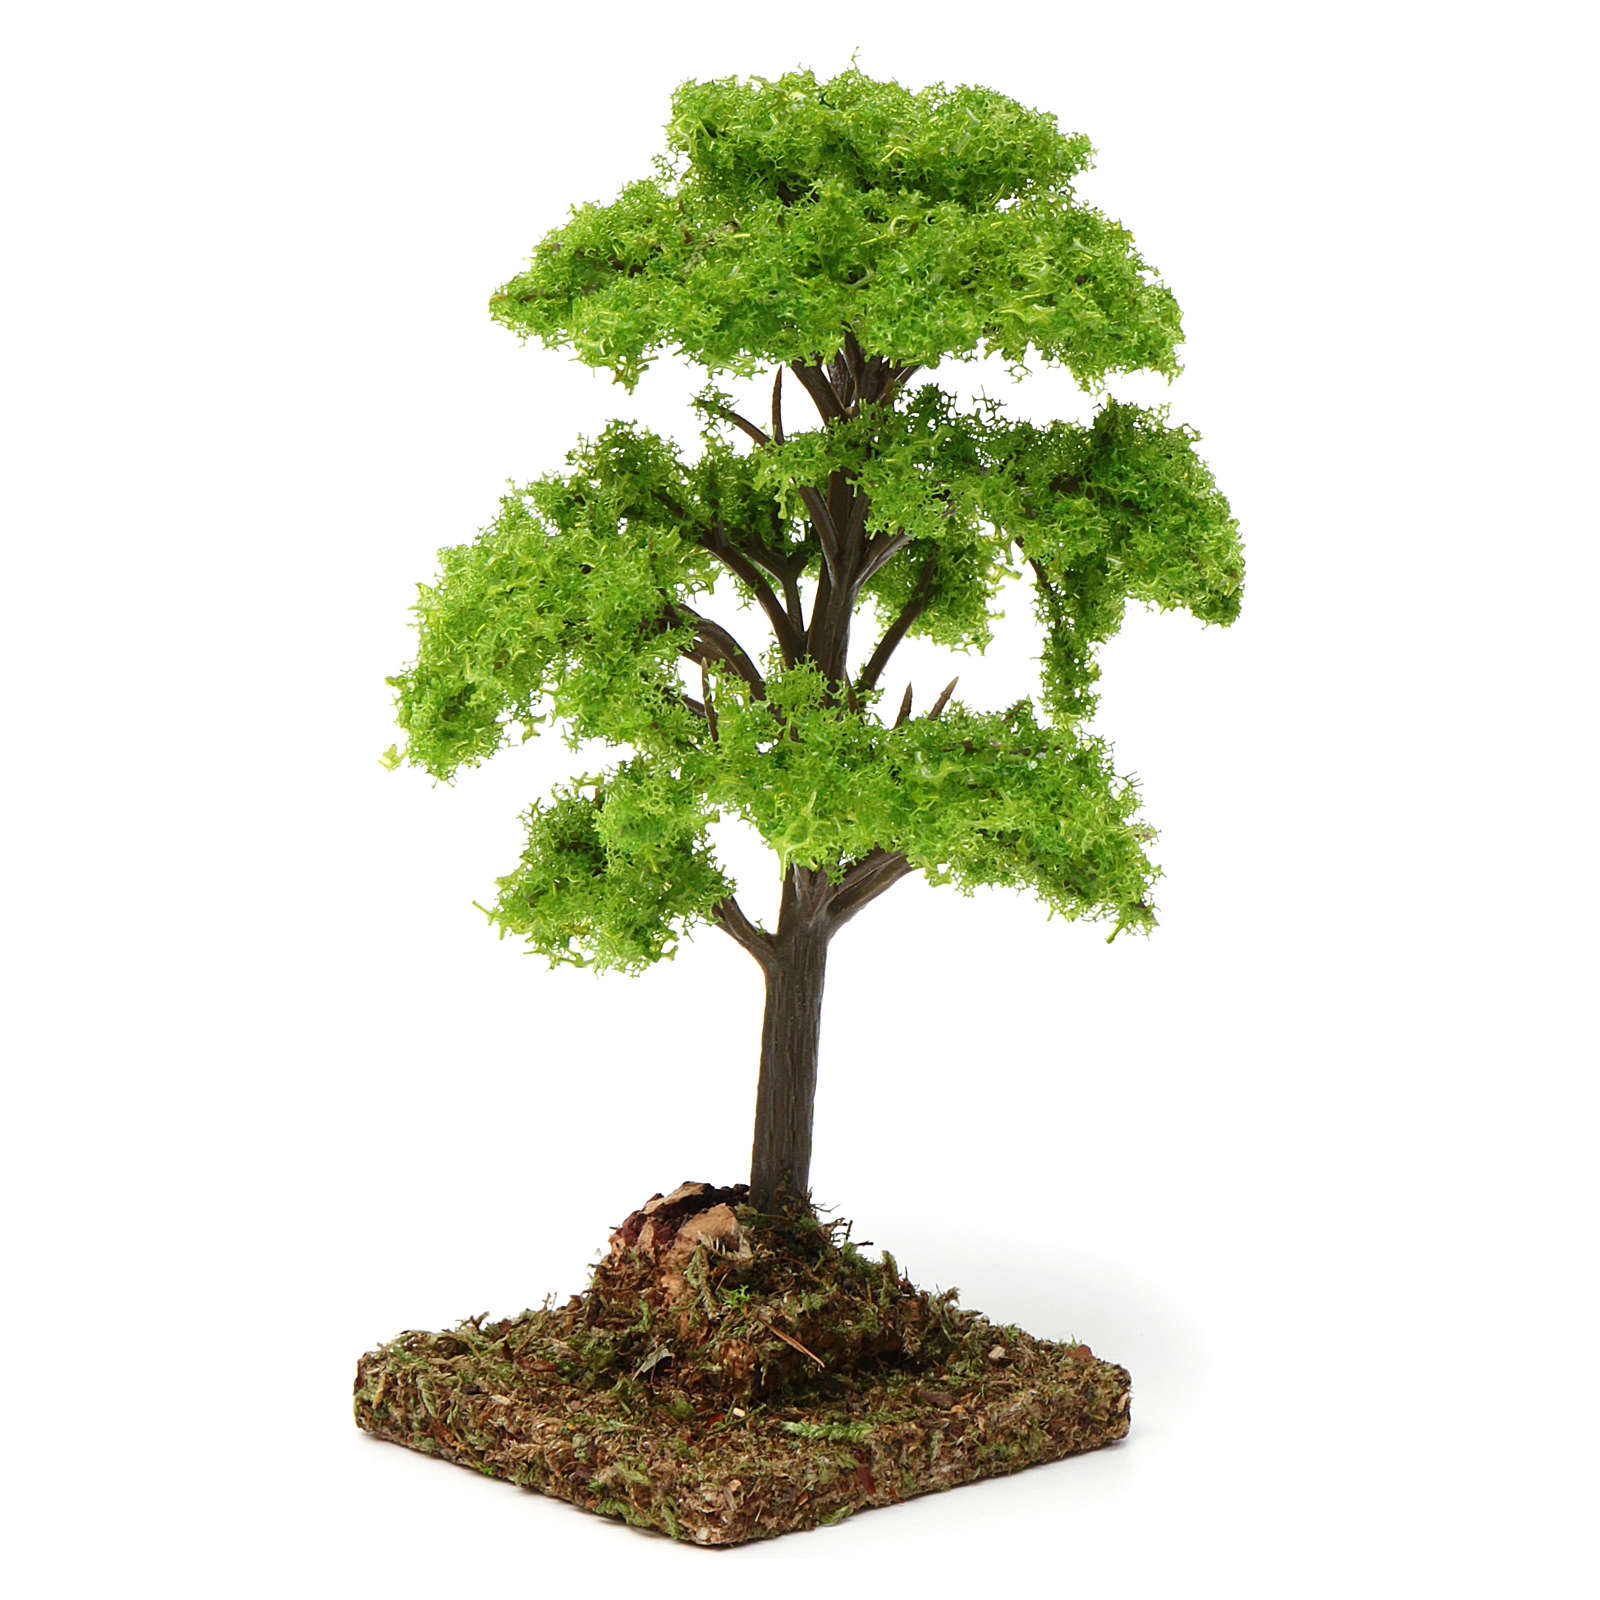 Green tree for Nativity Scene 7-10 cm 4